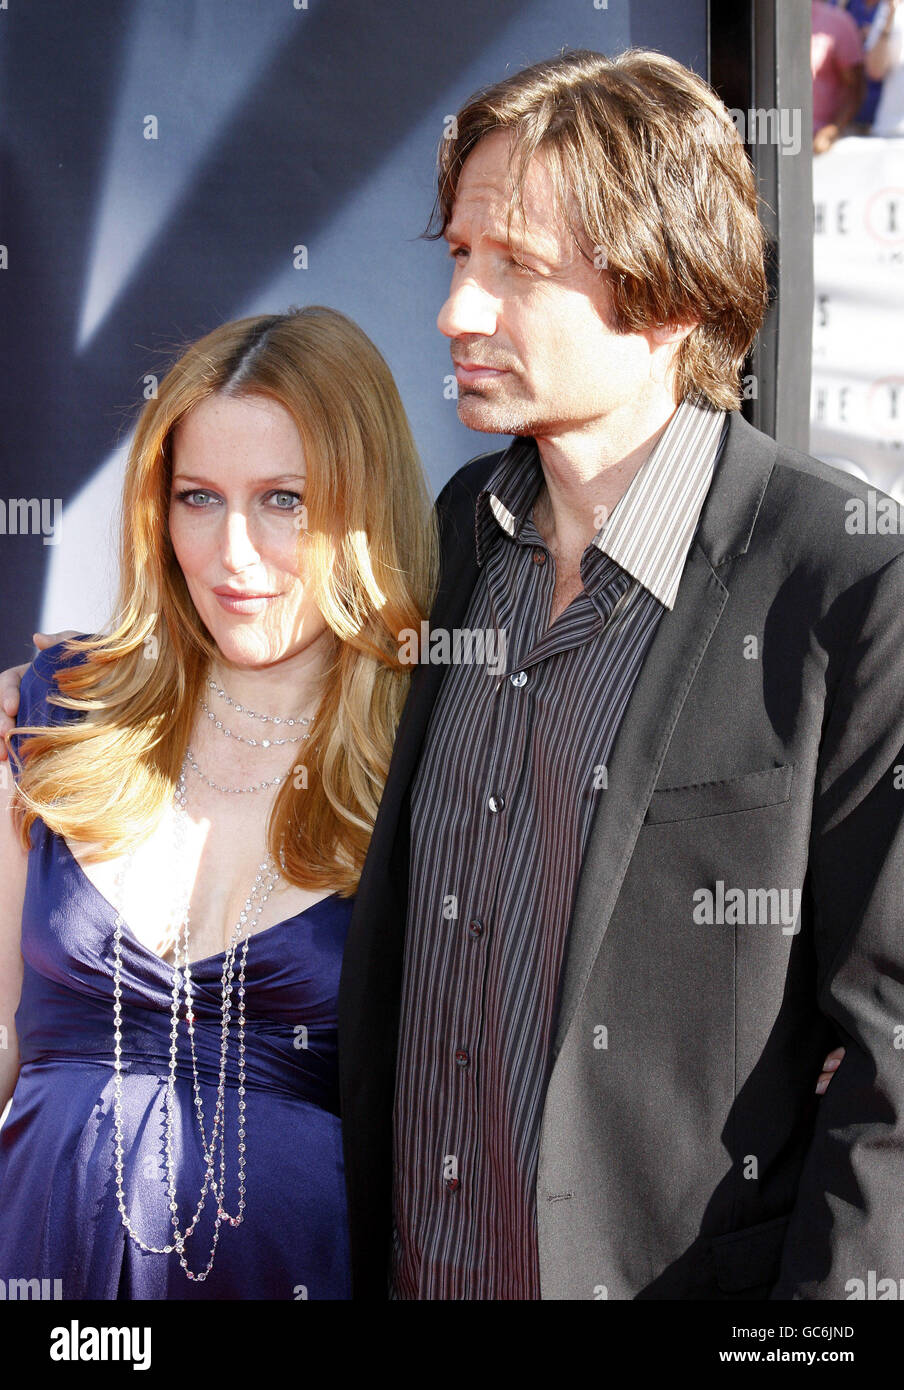 "David Duchovny and Gillian Anderson at the Los Angeles Premiere of ""The X-Files: I Want To Believe"" held in Hollywood. Stock Photo"